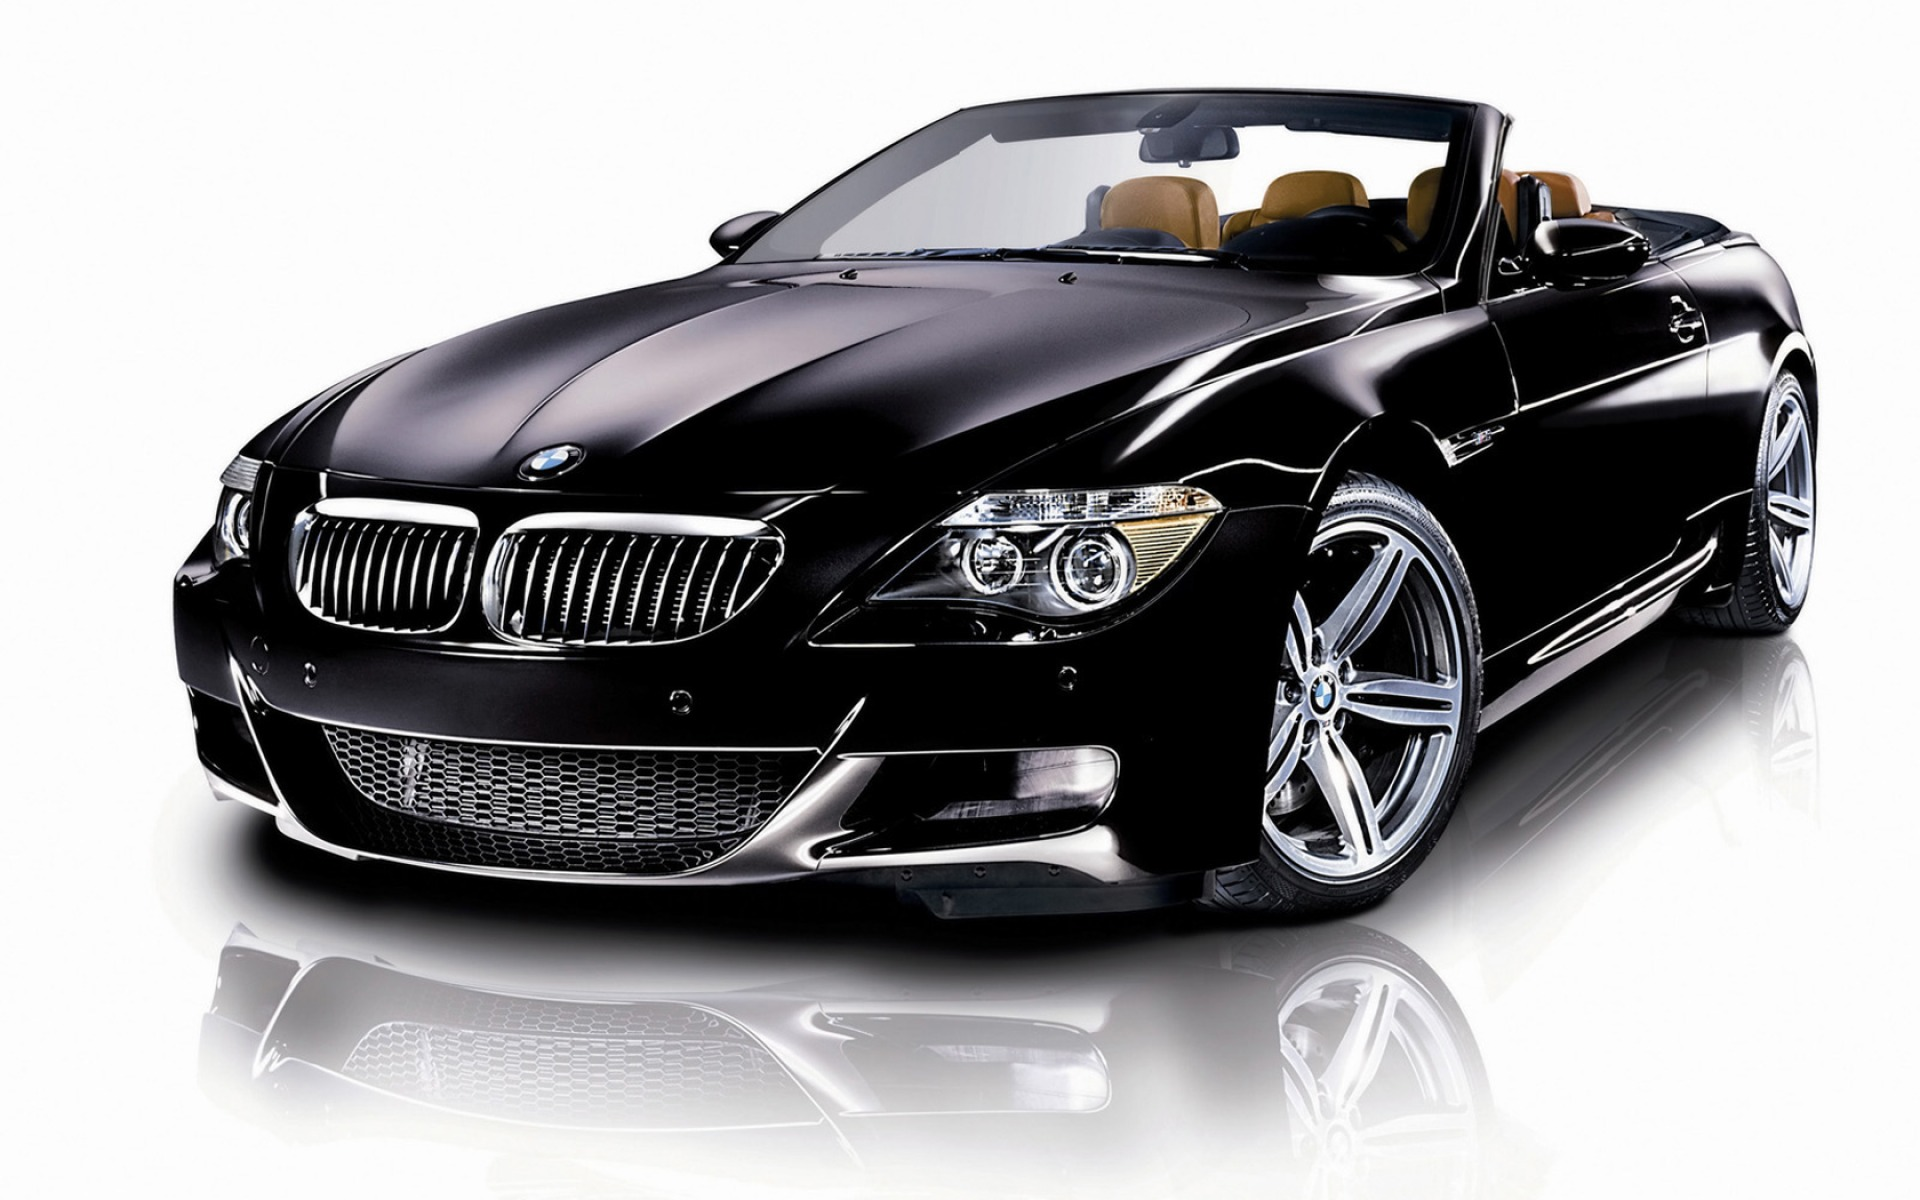 Ultrablogus  Terrific Bmw Car Wallpaper Wallpapers For Free Download About   With Lovable Bmw M Convertible Wallpaper Bmw Cars With Astounding Cadillac Escalade Interior  Also  Mazda  Interior In Addition Interior Auto And  Lincoln Mkz Interior As Well As Jeep Grand Cherokee Interior Pictures Additionally  Honda Crv Interior Pictures From Allfreedownloadcom With Ultrablogus  Lovable Bmw Car Wallpaper Wallpapers For Free Download About   With Astounding Bmw M Convertible Wallpaper Bmw Cars And Terrific Cadillac Escalade Interior  Also  Mazda  Interior In Addition Interior Auto From Allfreedownloadcom